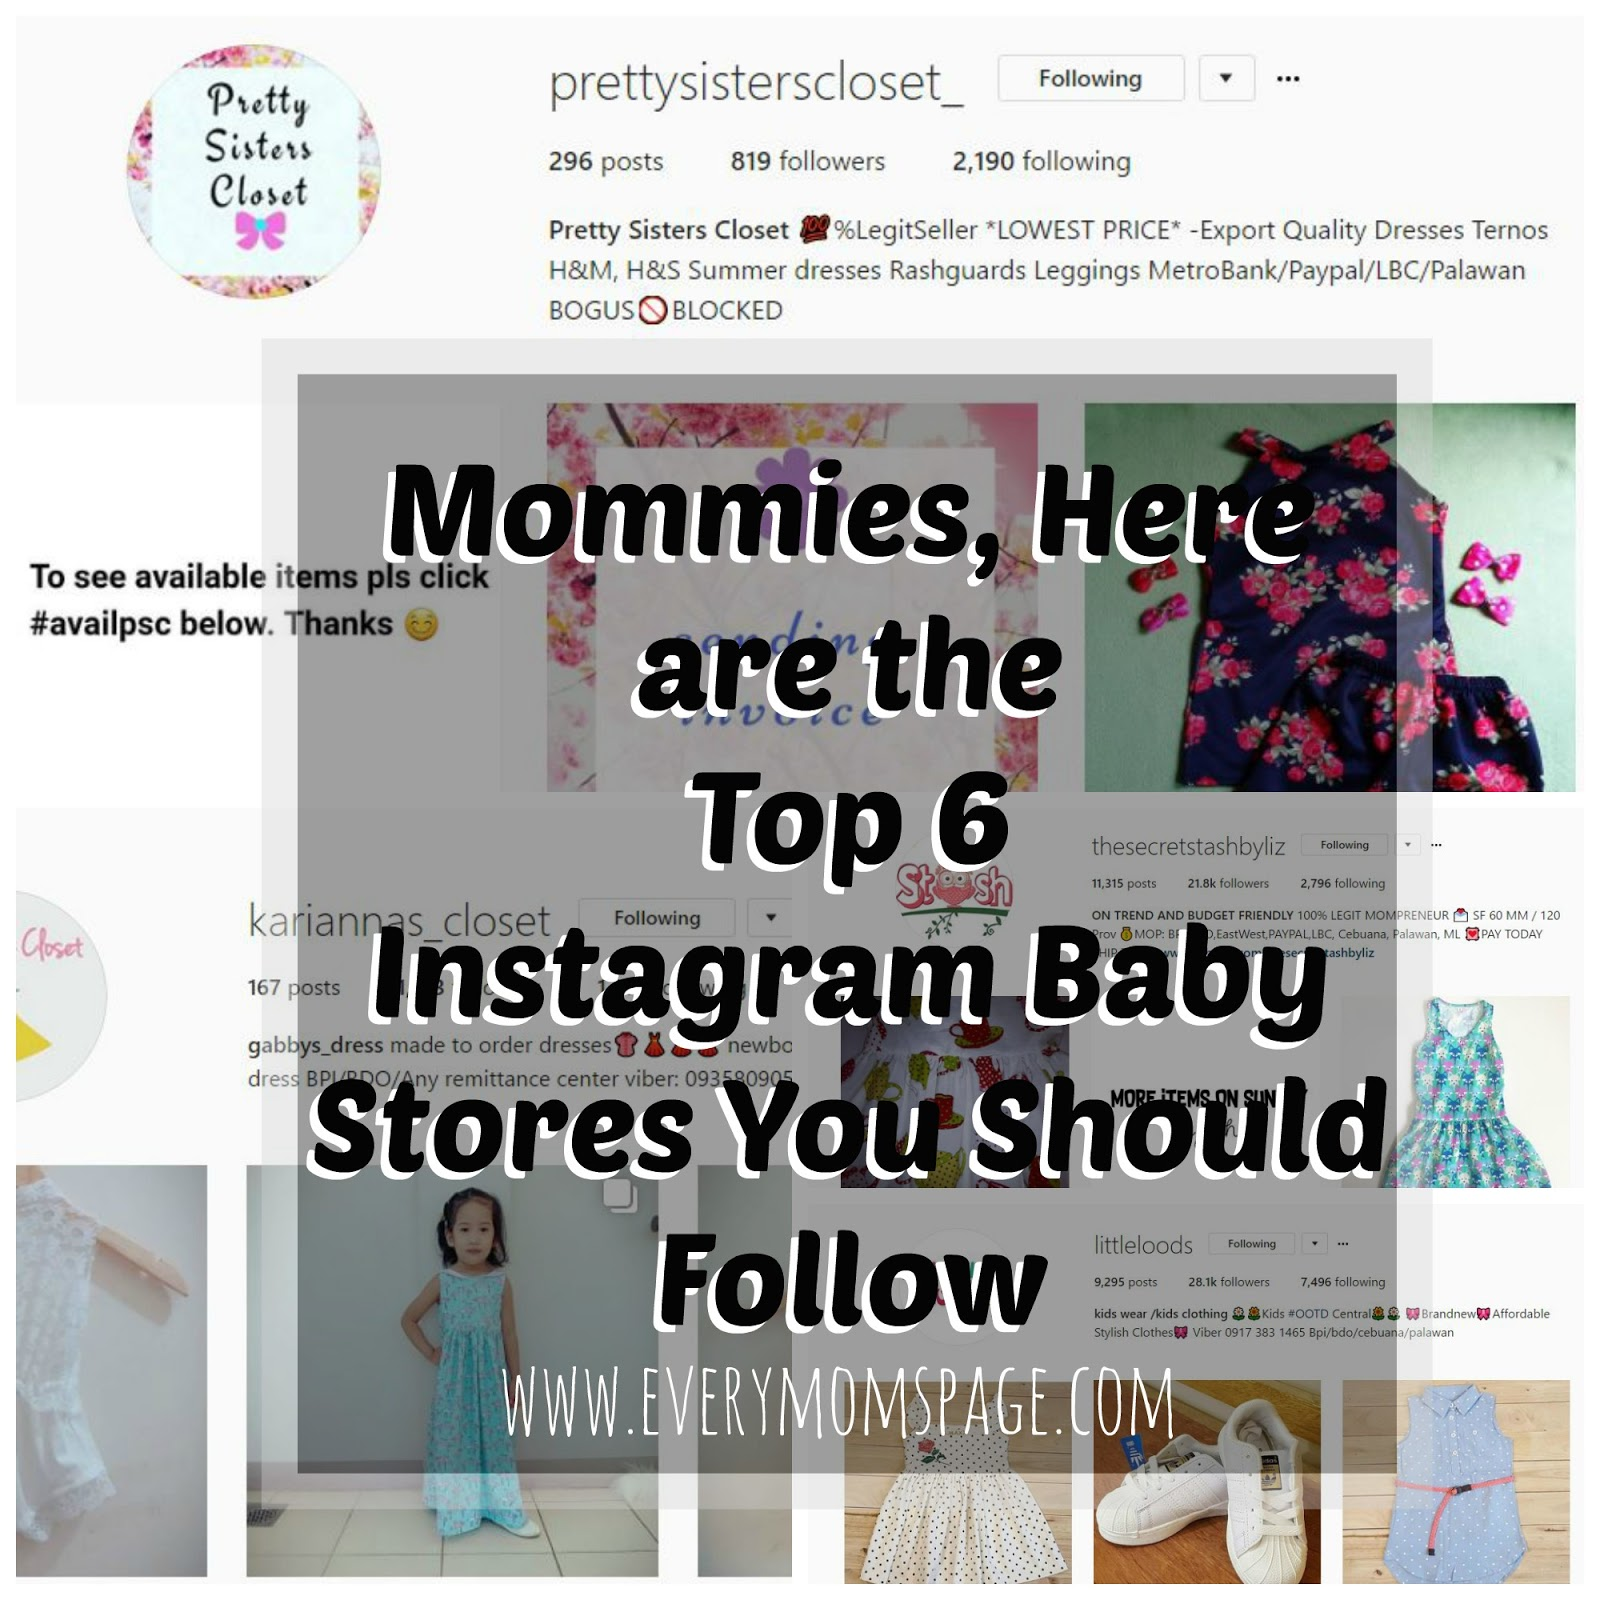 b283ecc48bf77 When my baby girl came, I cast around Instagram for baby shops to follow  and stalk for pretty baby dresses and stuff. Here are my recommended Top 6  LEGIT ...